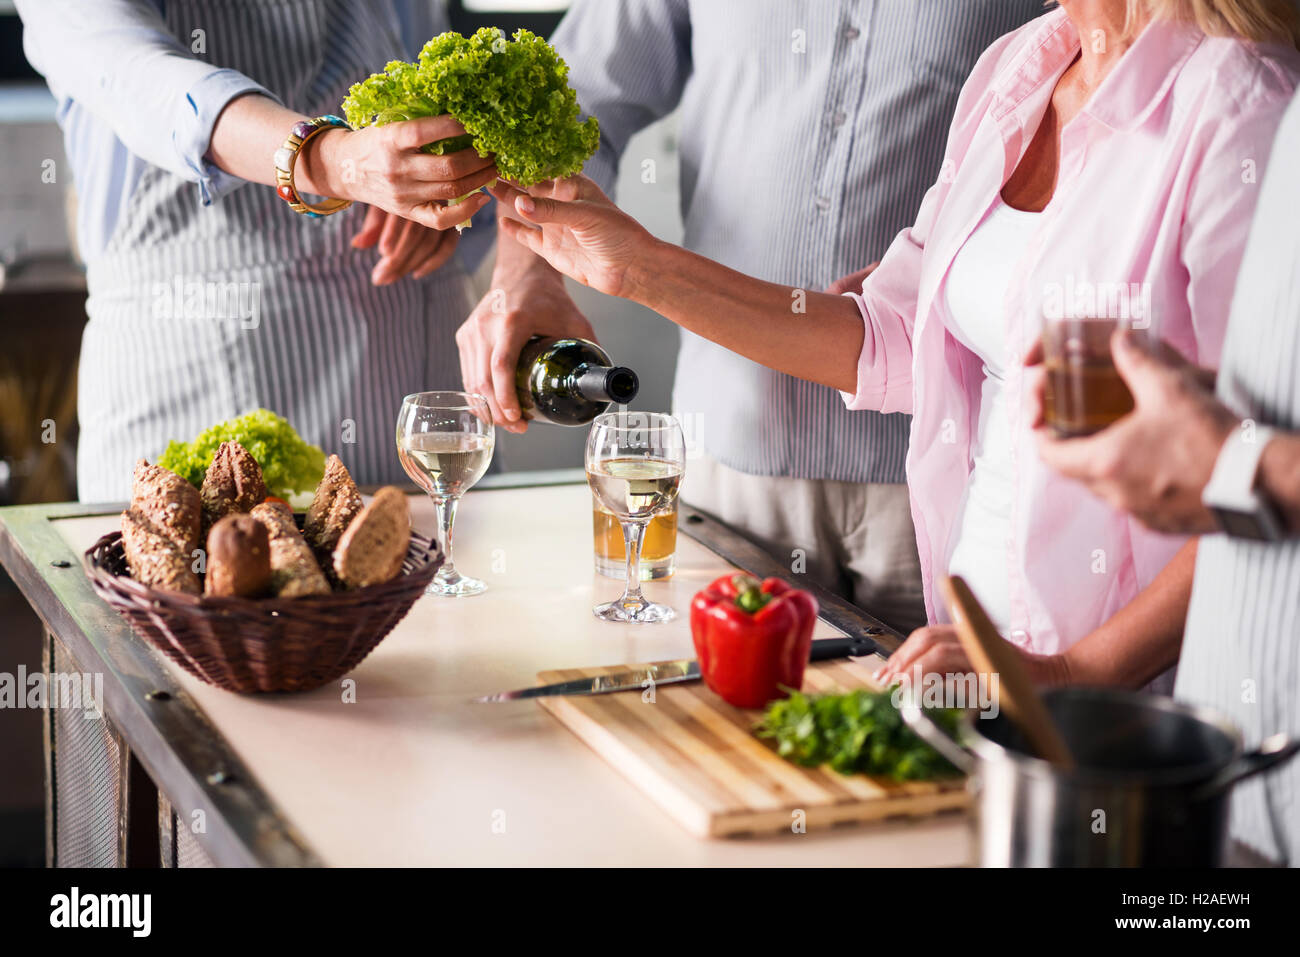 Family cooking food together while enjoying wine - Stock Image